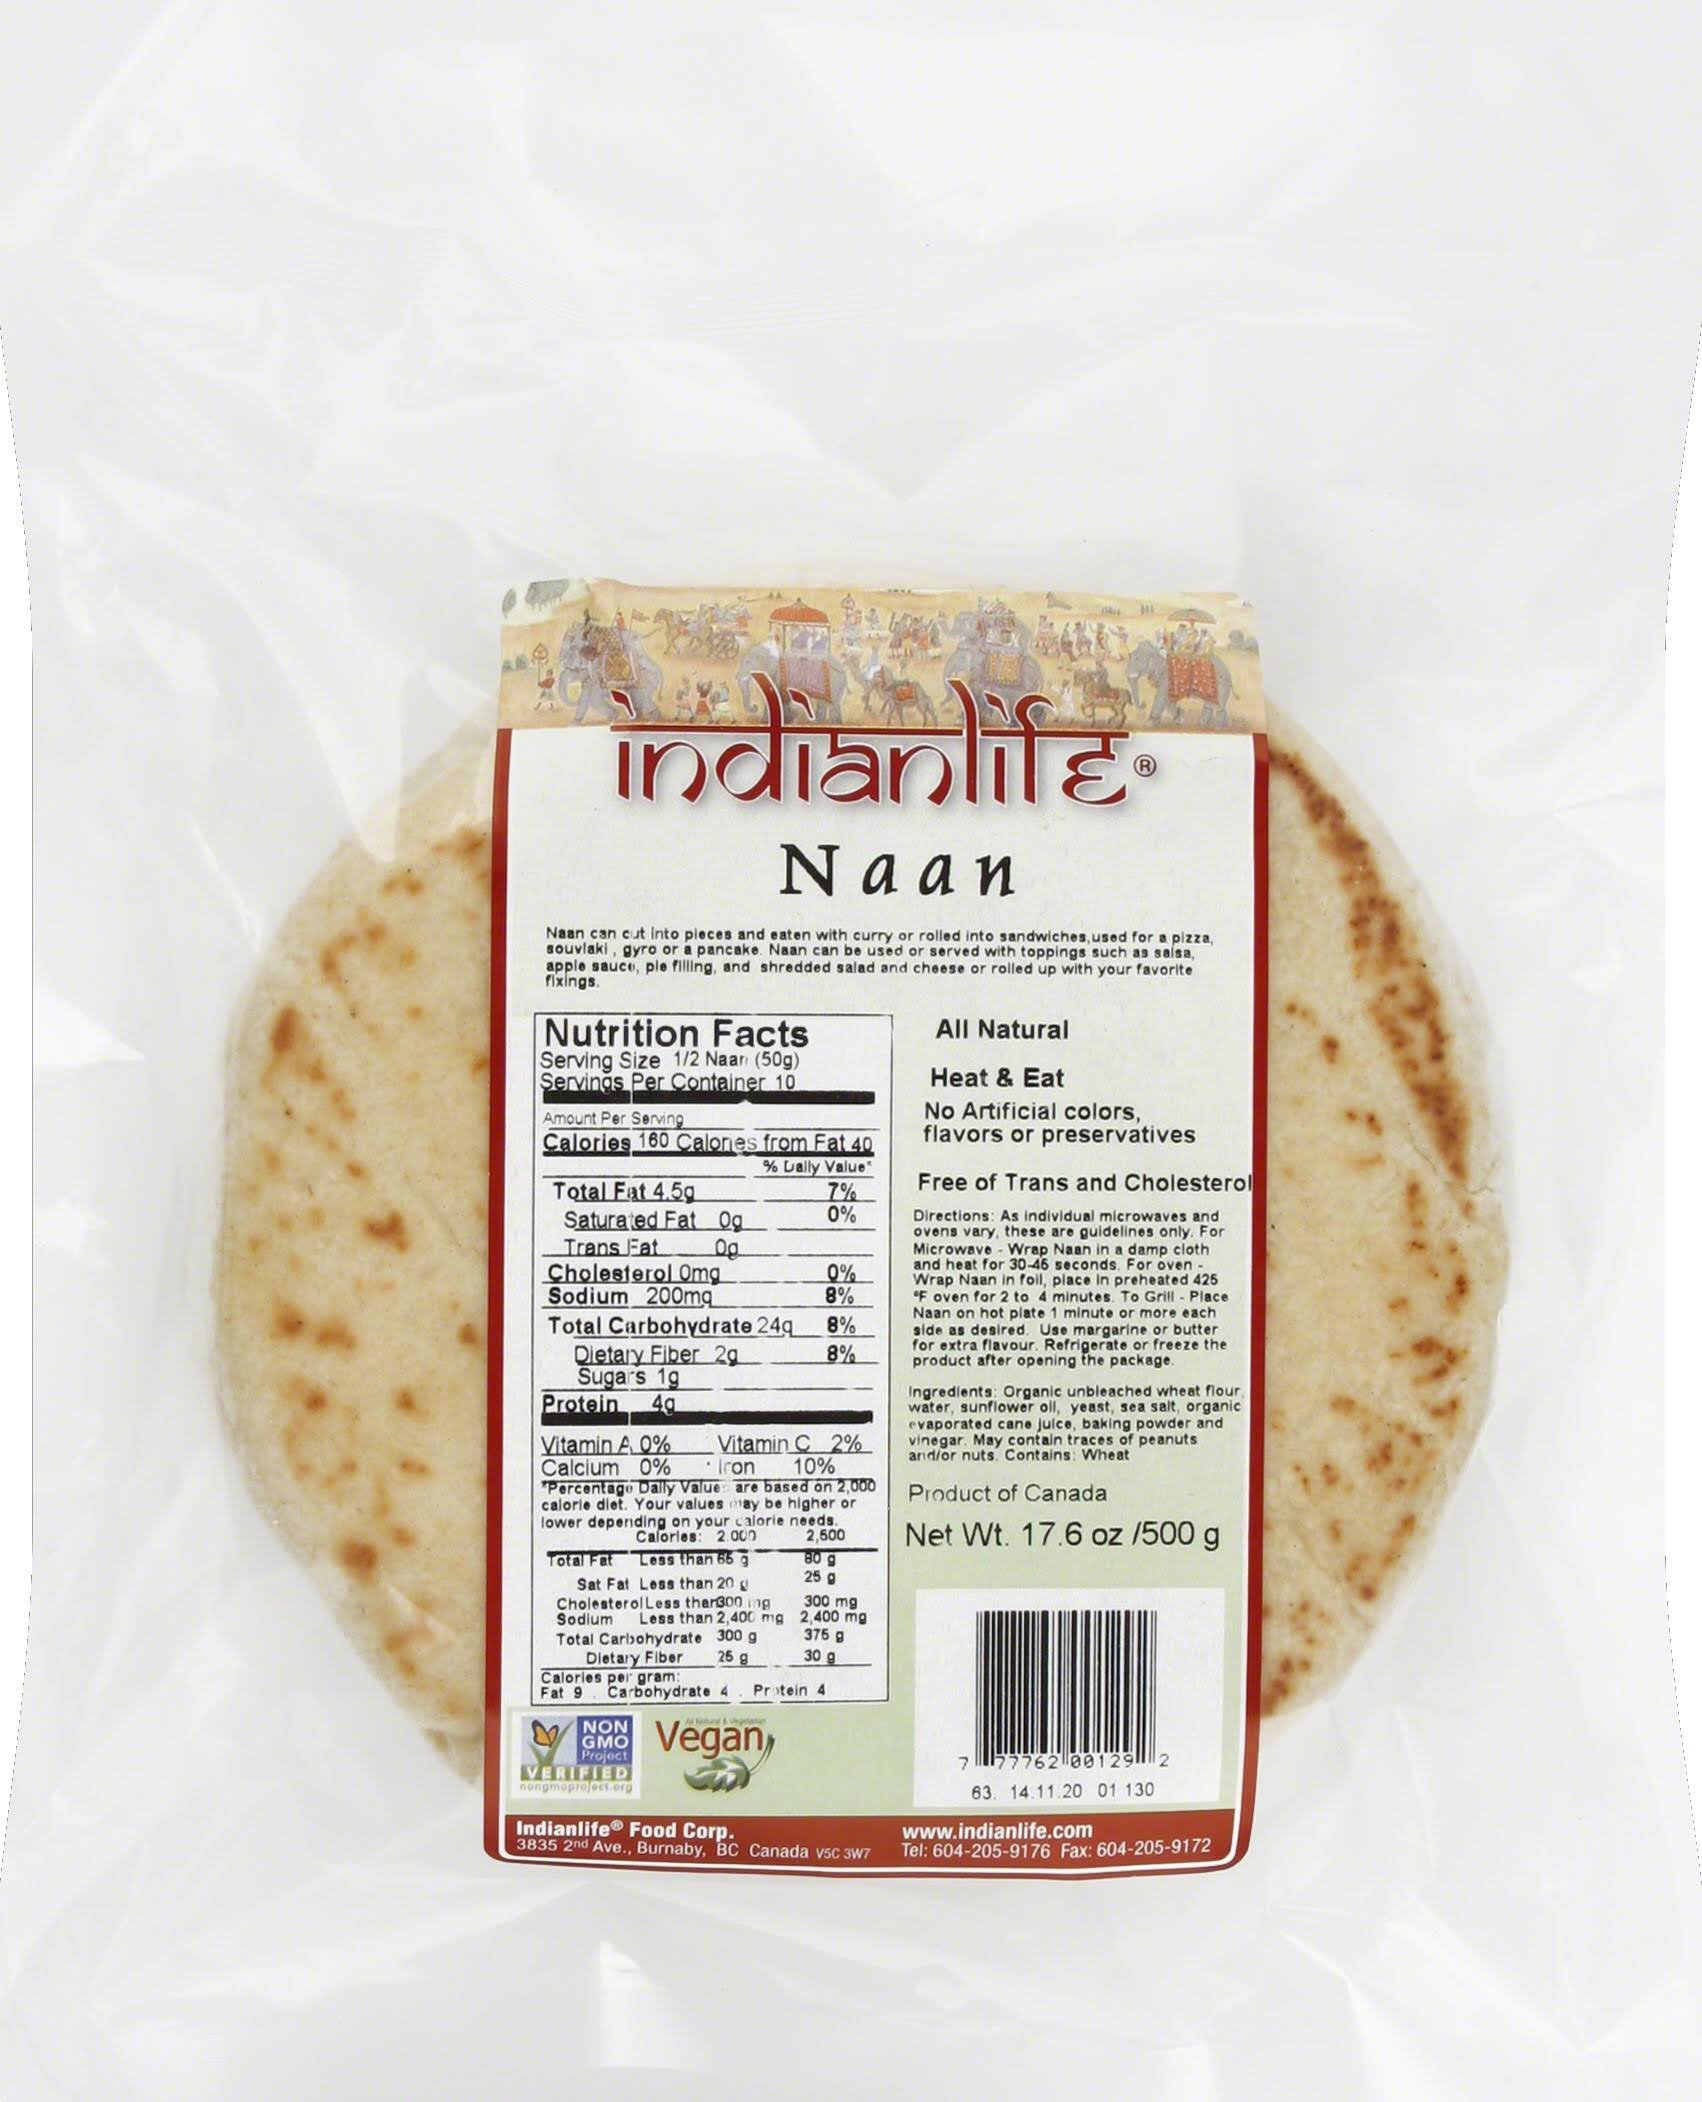 Indian Life Naan, Plain, 5-Count, 500 Gram Boxes (Pack of 12) by Indianlife